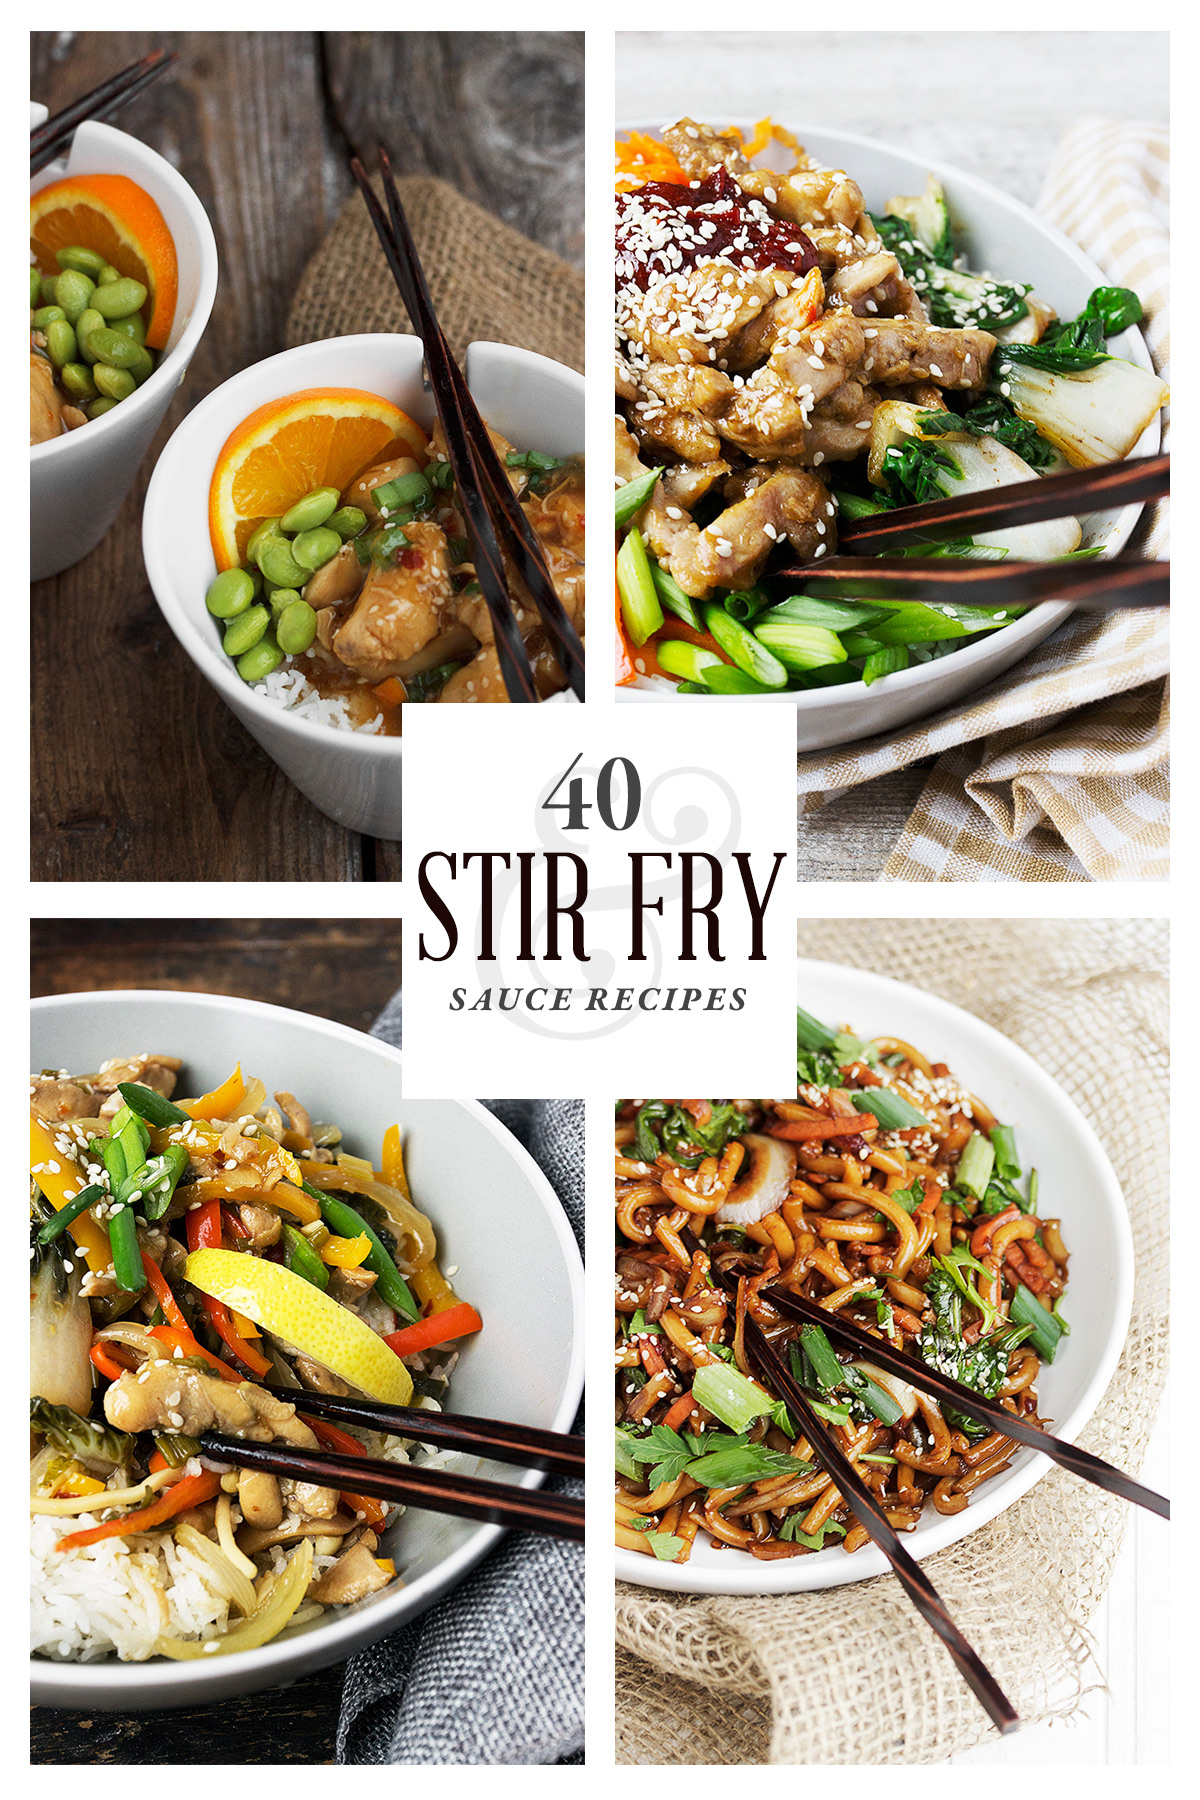 40 basic stir fry sauce recipes seasons and suppers 40 stir fry sauce recipes ultimate stir fry cheat sheet forumfinder Gallery